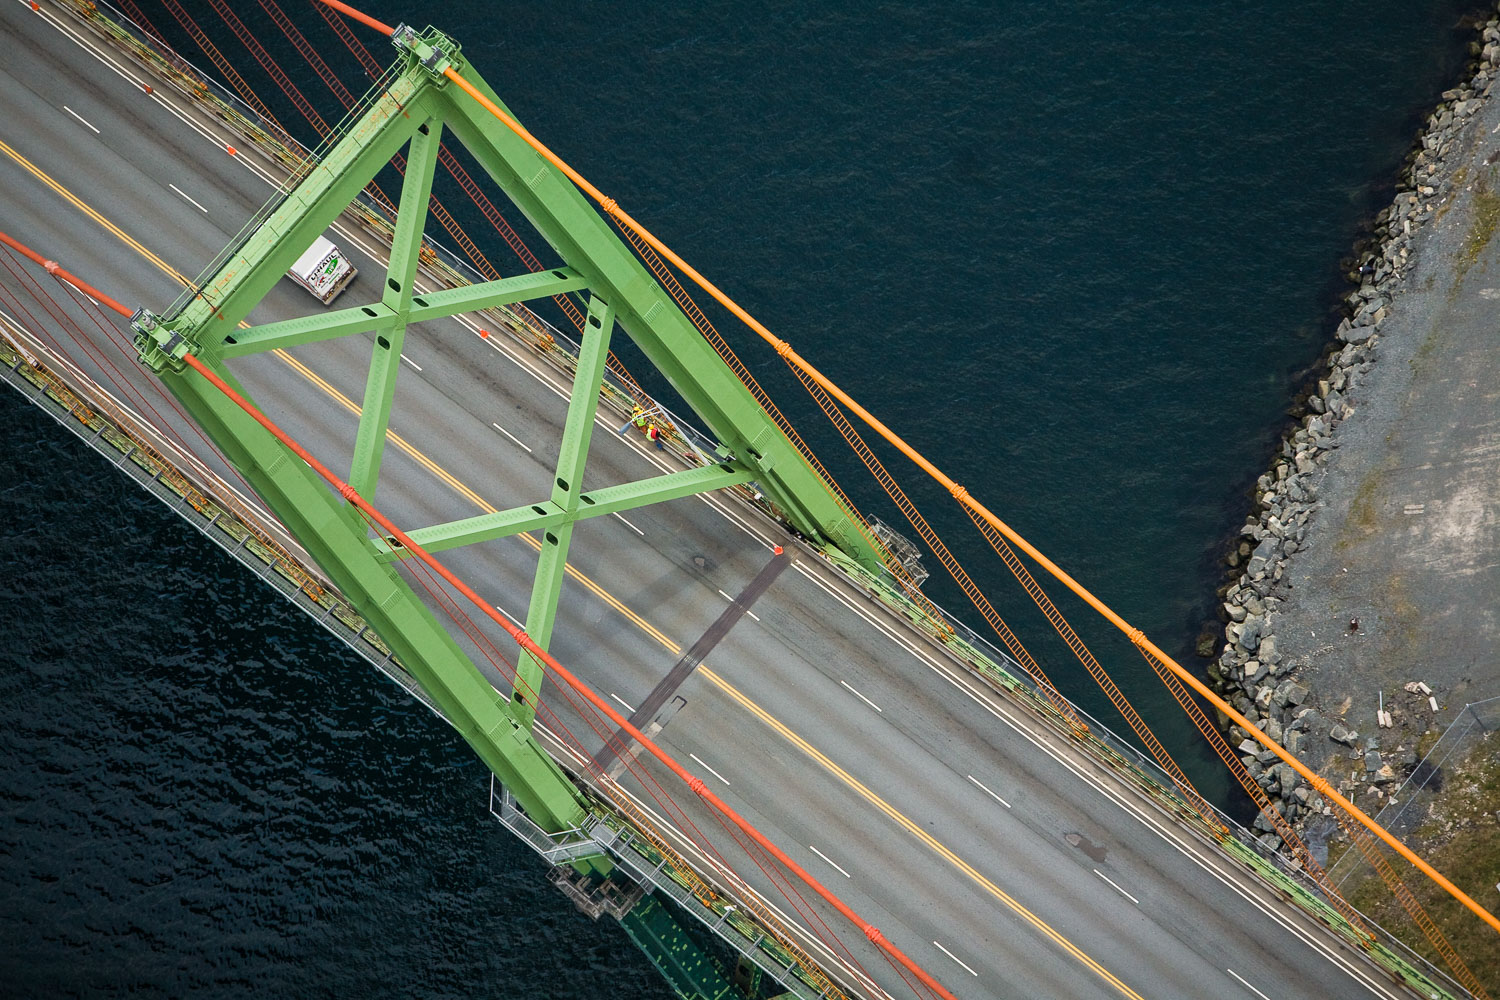 Photograph of the Macdonald Bridge in Halifax